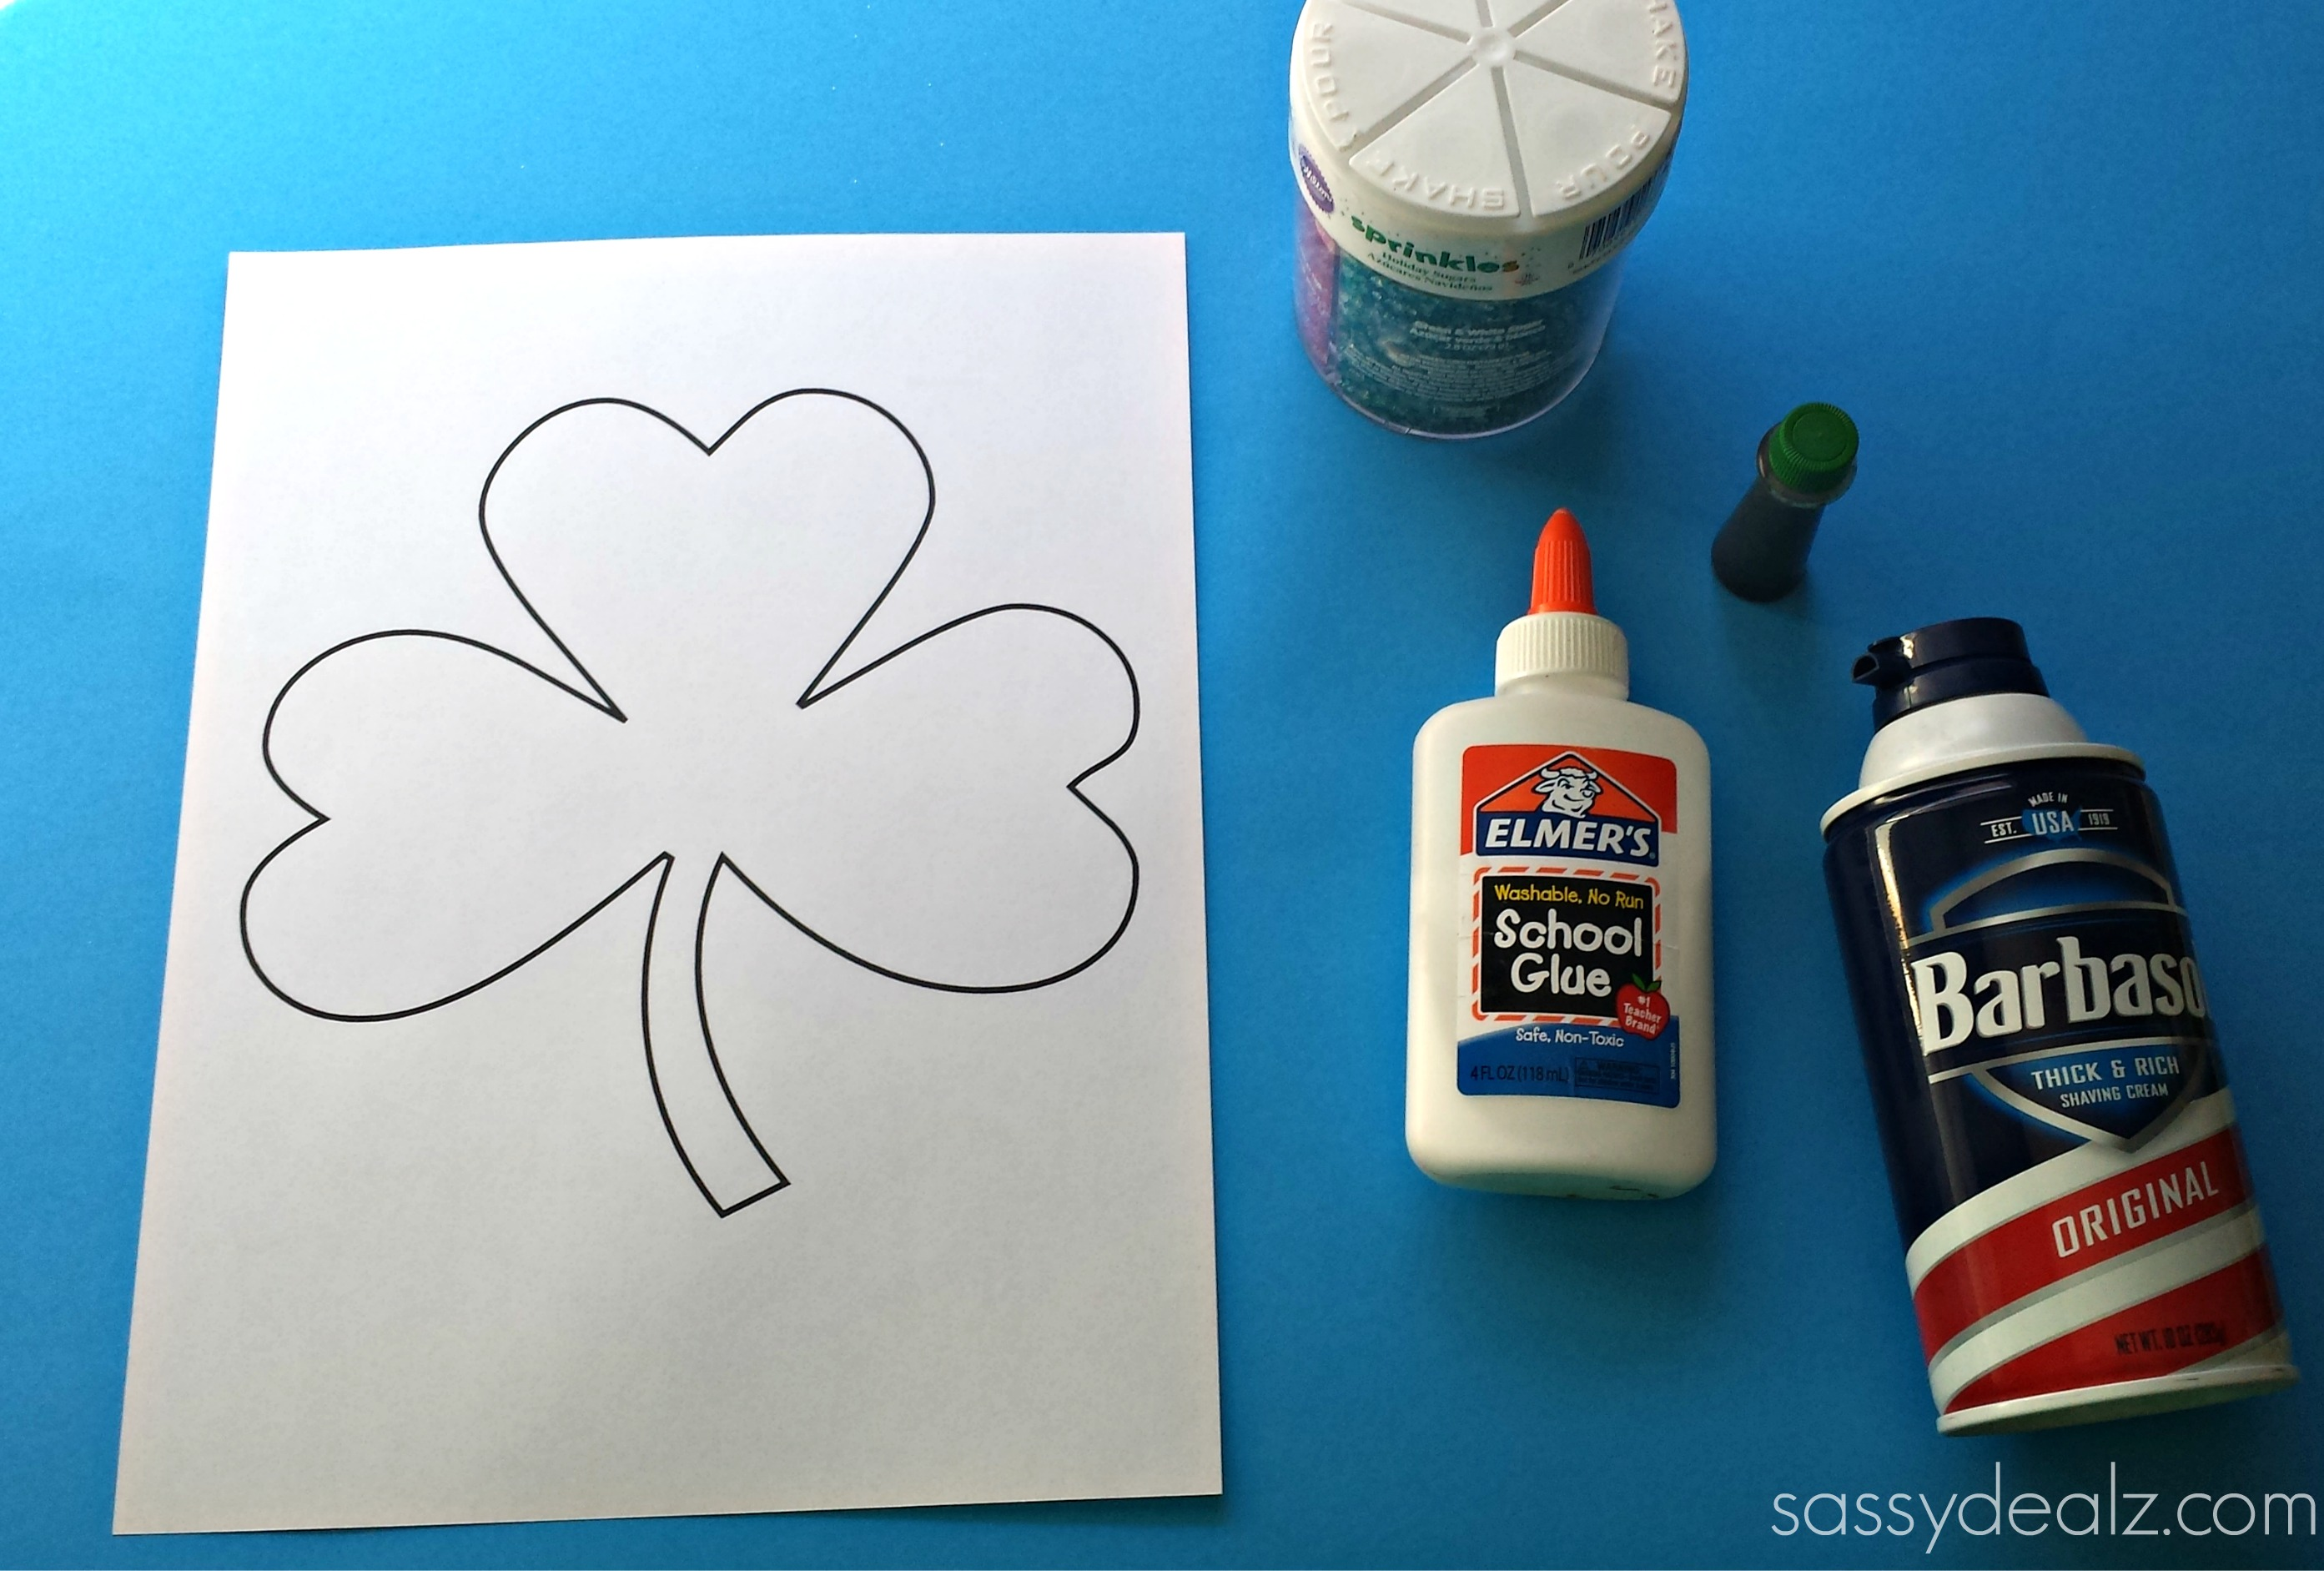 Painting With Glue And Food Coloring